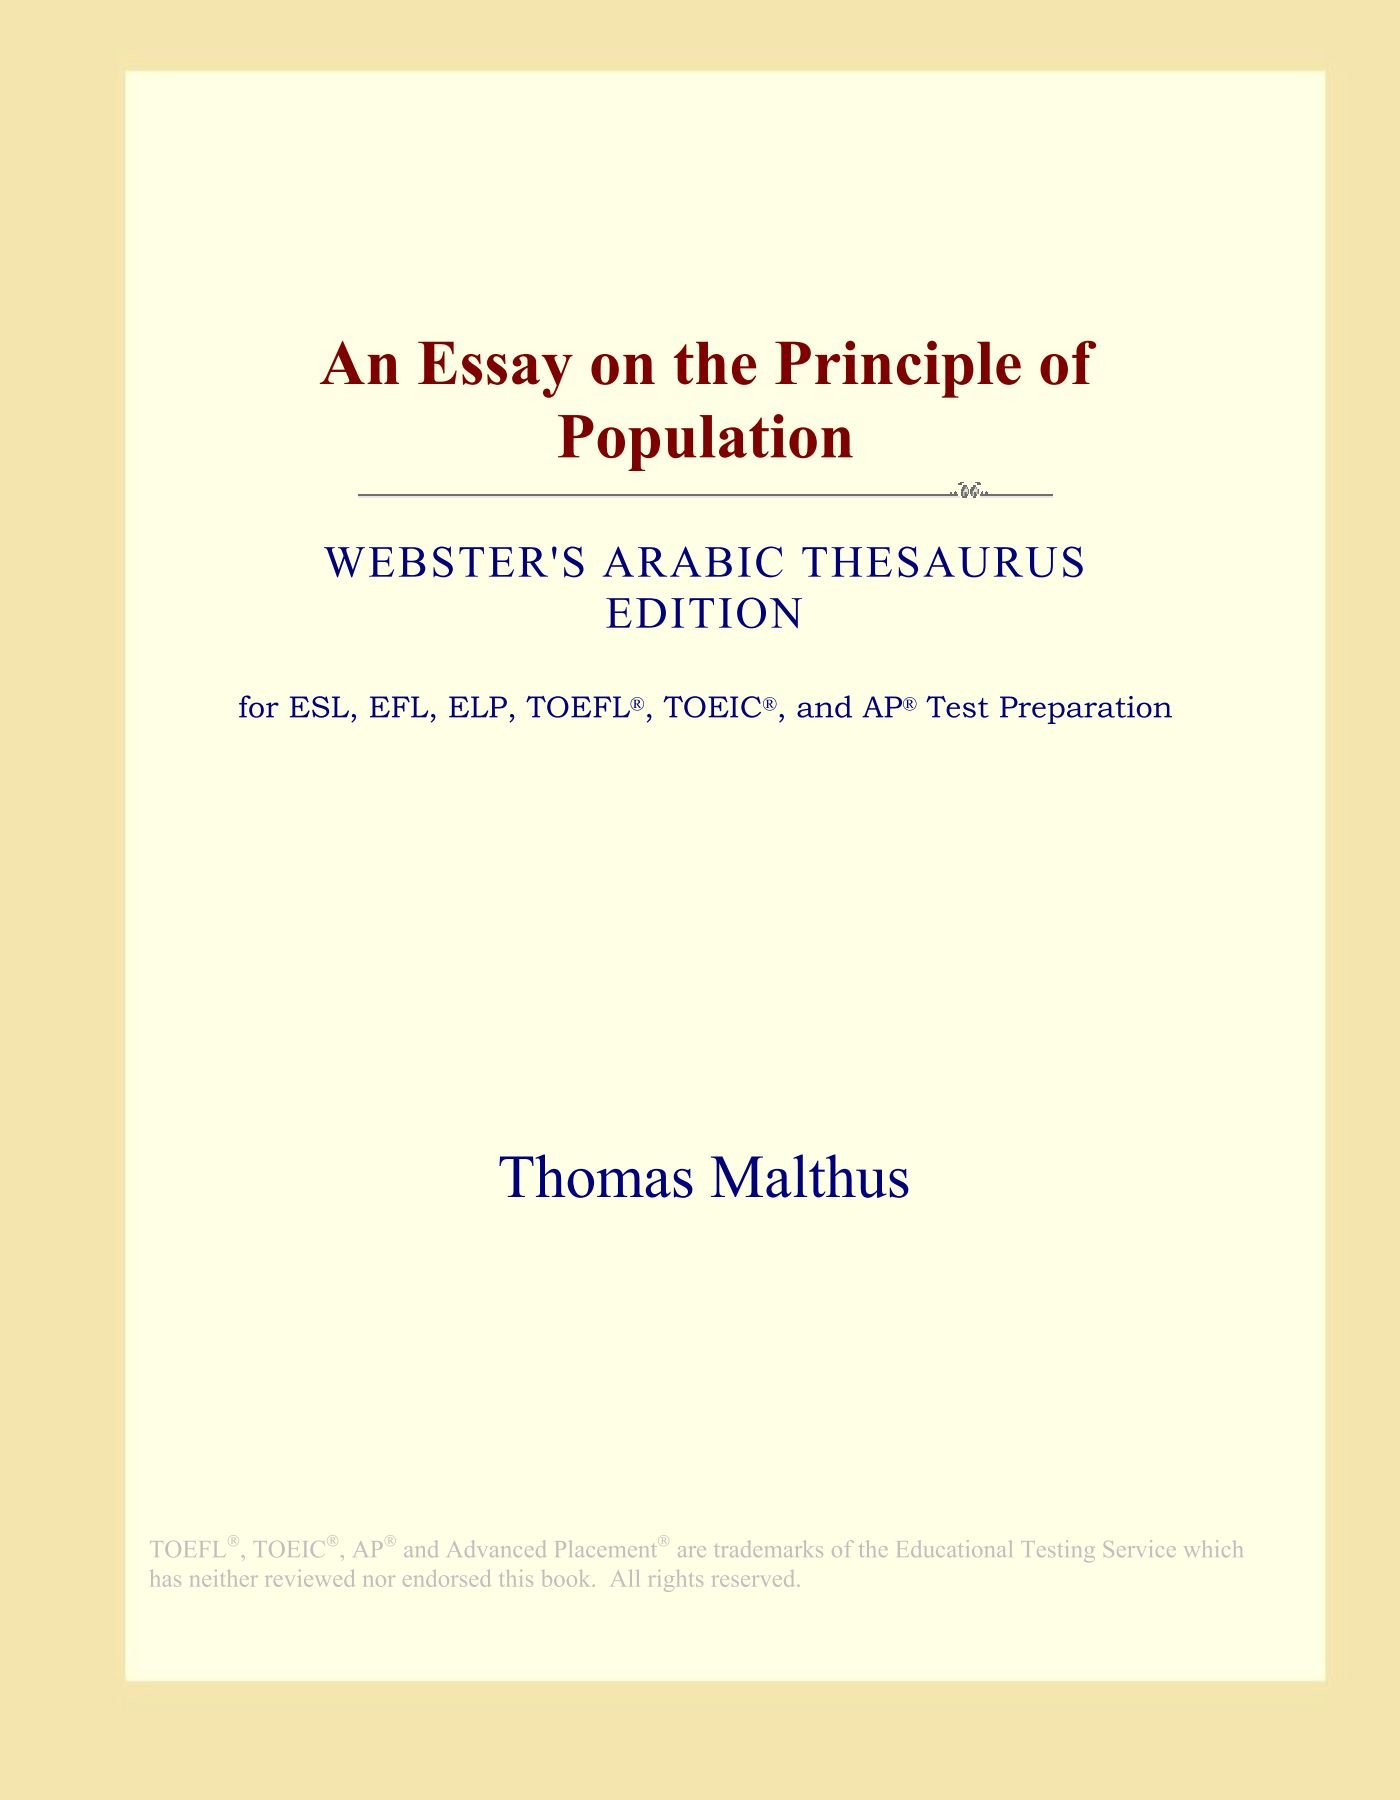 020 61groeunvgl Essay Example An On The Principle Of Fascinating Population By Thomas Malthus Pdf In Concluded Which Following Full